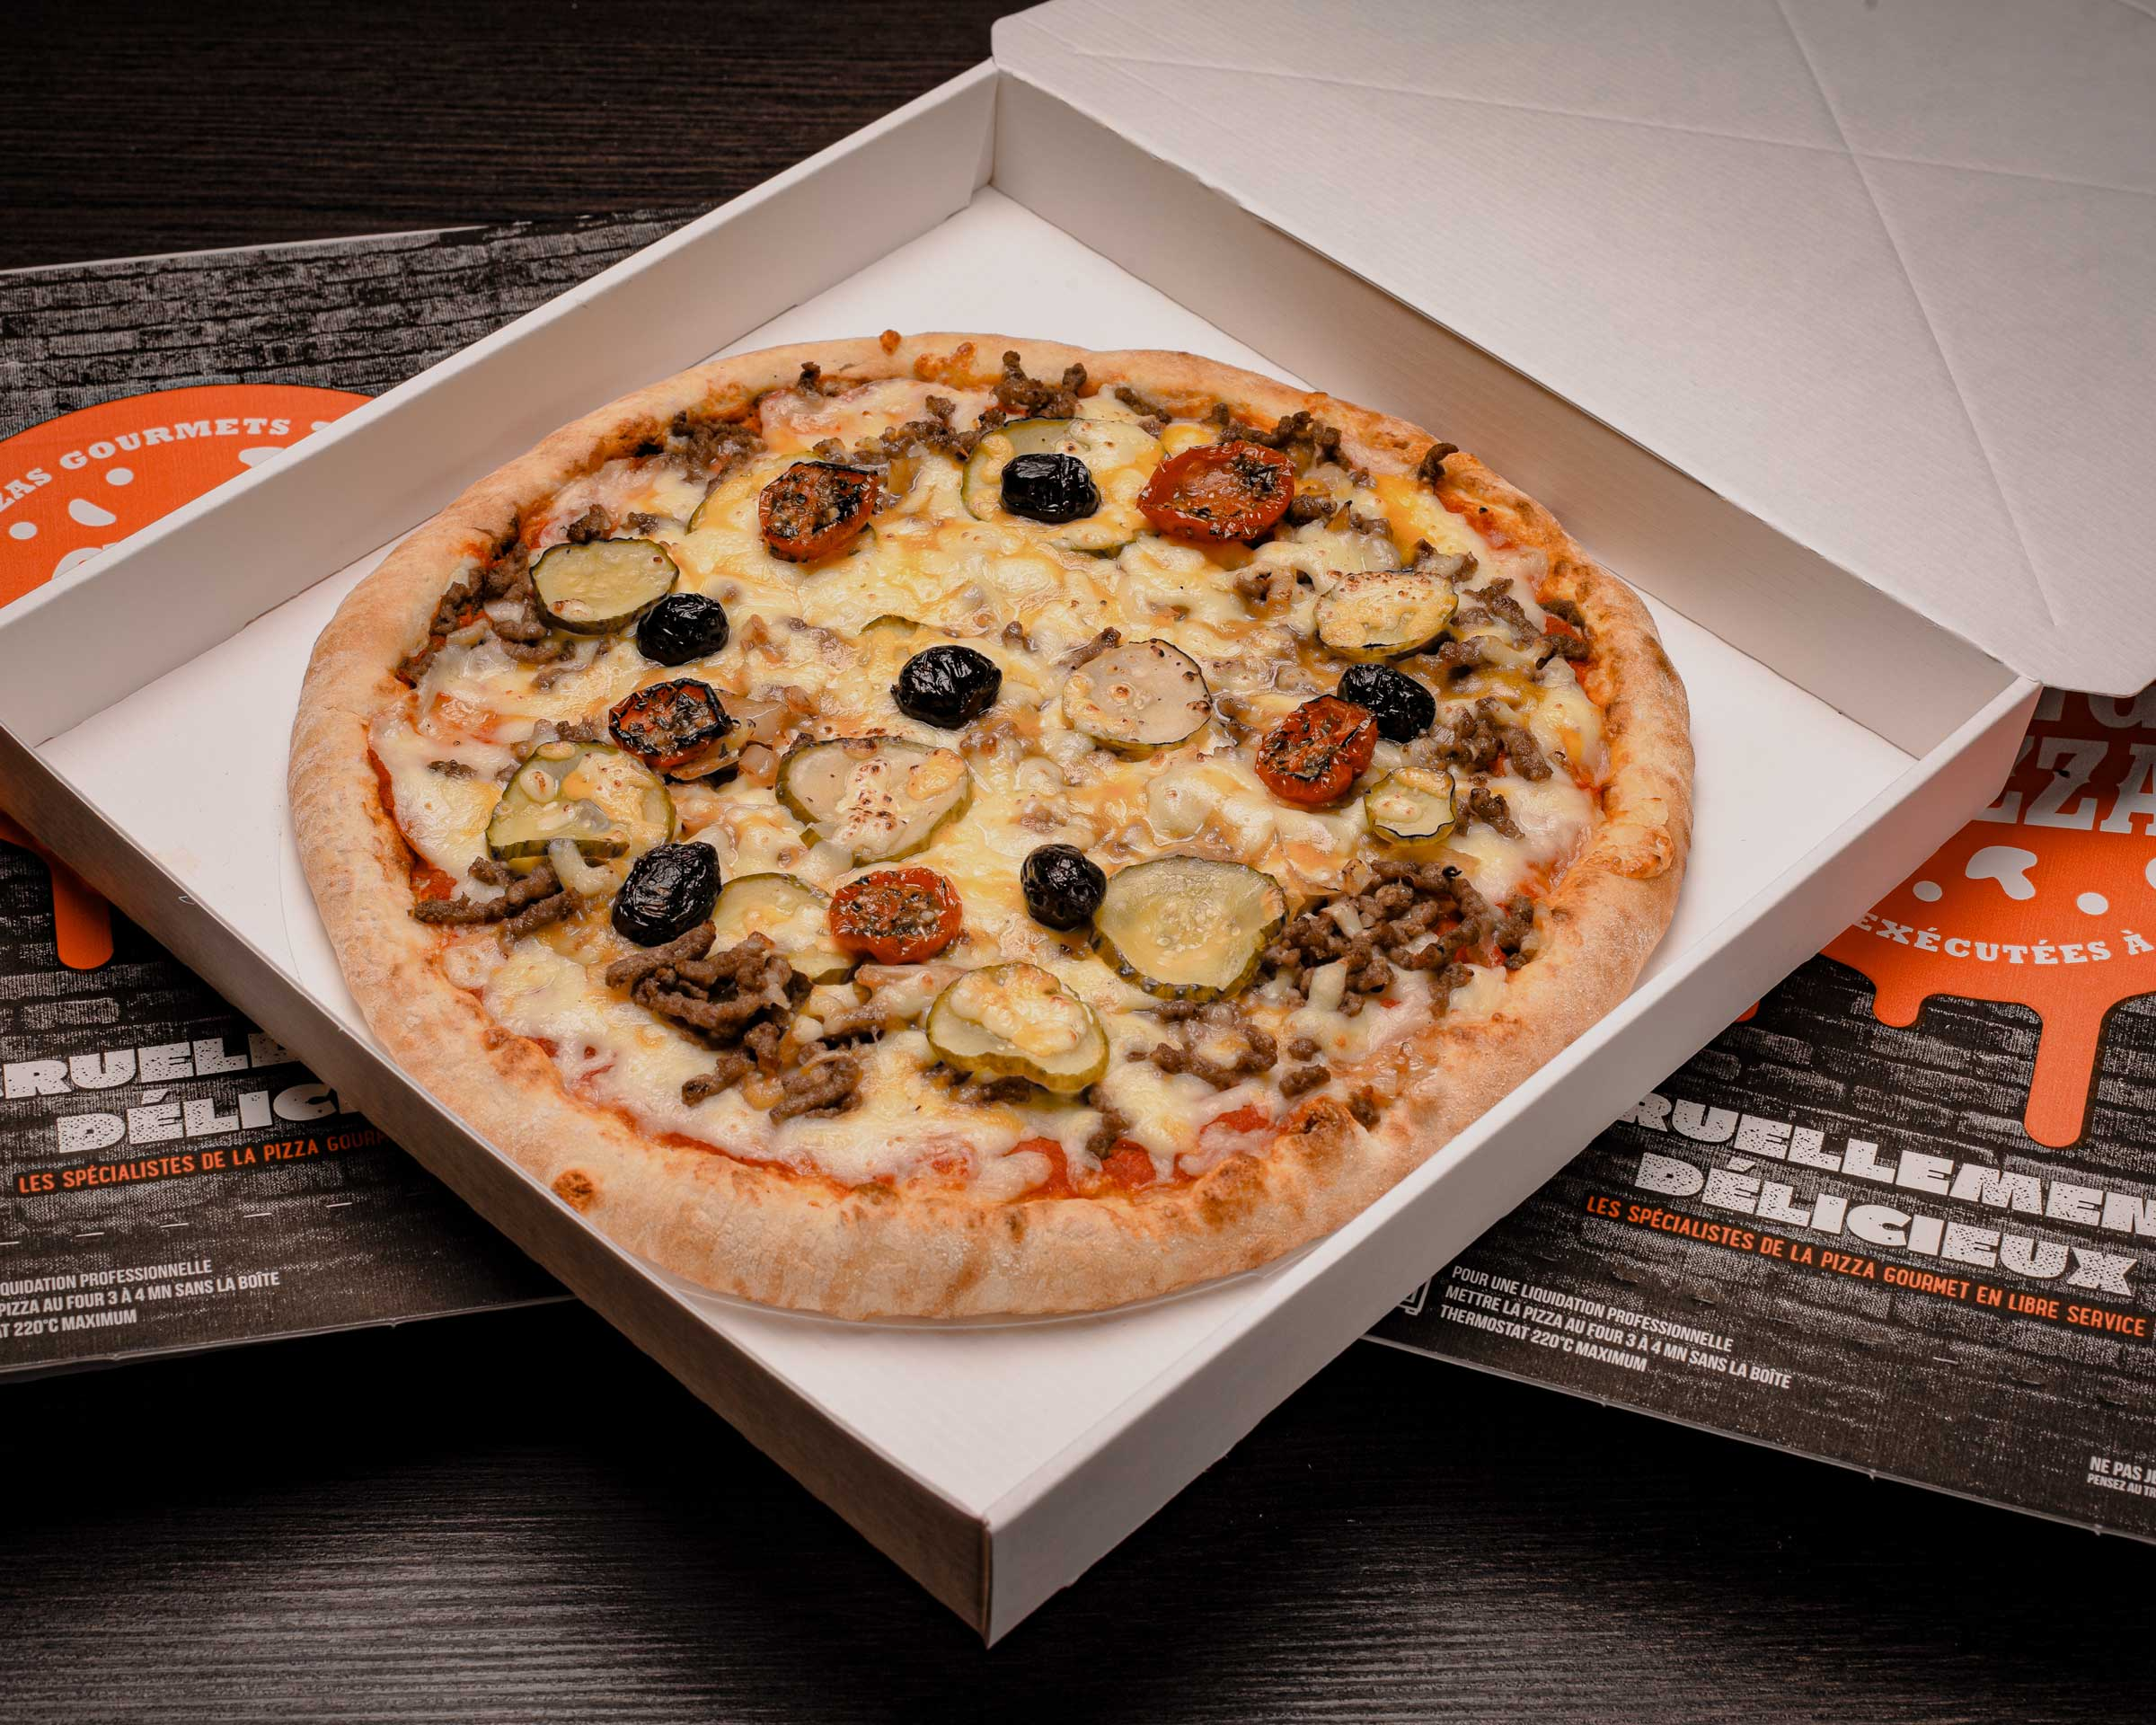 LES-PIZZAS-GOURMETS-GANG-OF-PIZZA